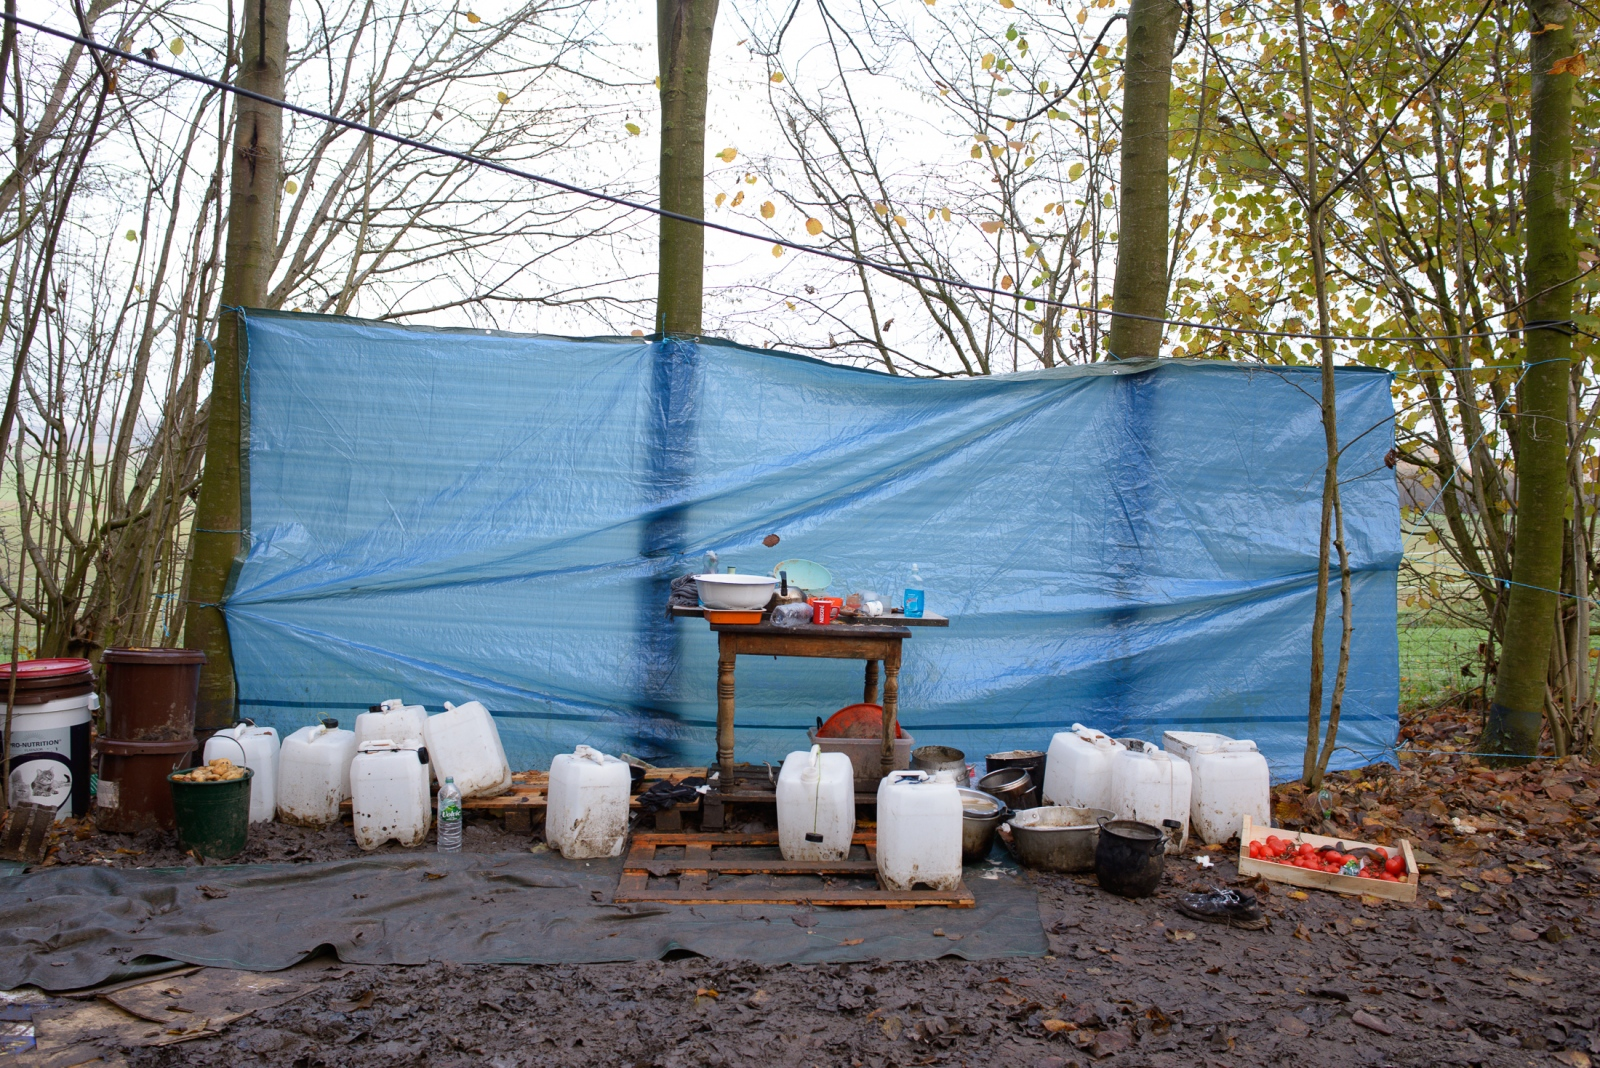 December 4, 2017 - Undisclosed location, North of France. Outdoor kitchen. Local volunteers deliver jerry cans of potable water for cooking, usually once a week. Bottled drinking donated by local supermarkets is also delivered when available.